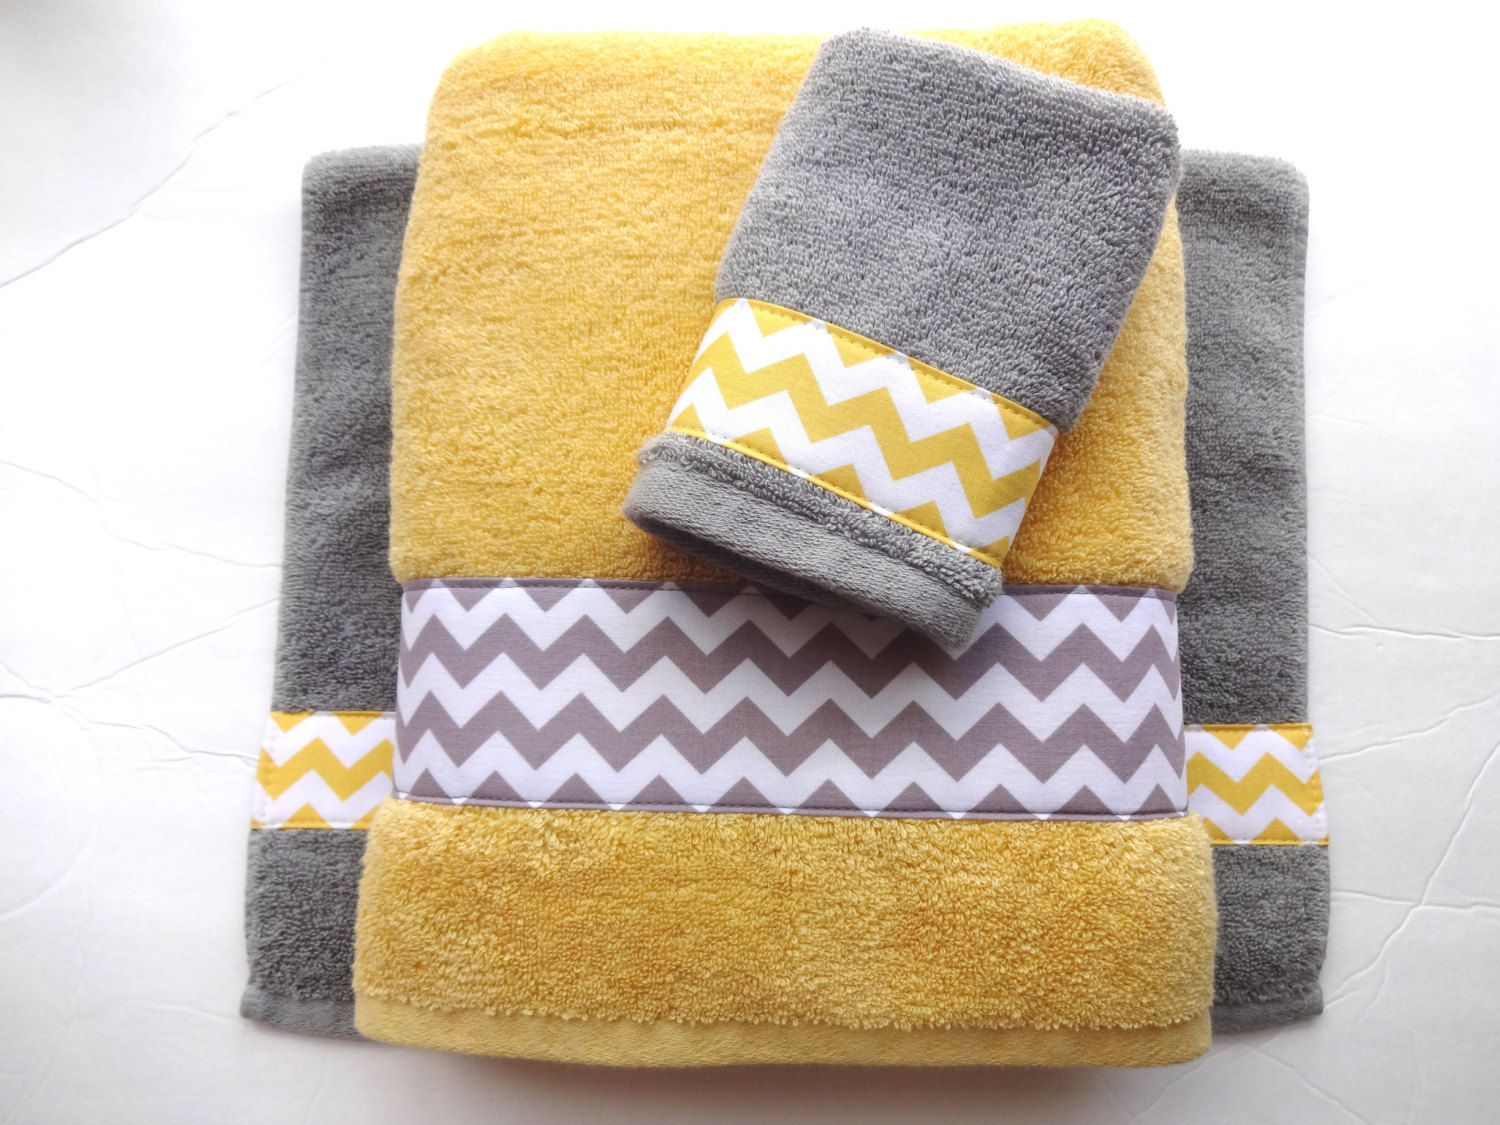 Pick Your Size Towel Yellow And Grey Towels Gray And Yellow - Towel sets for small bathroom ideas